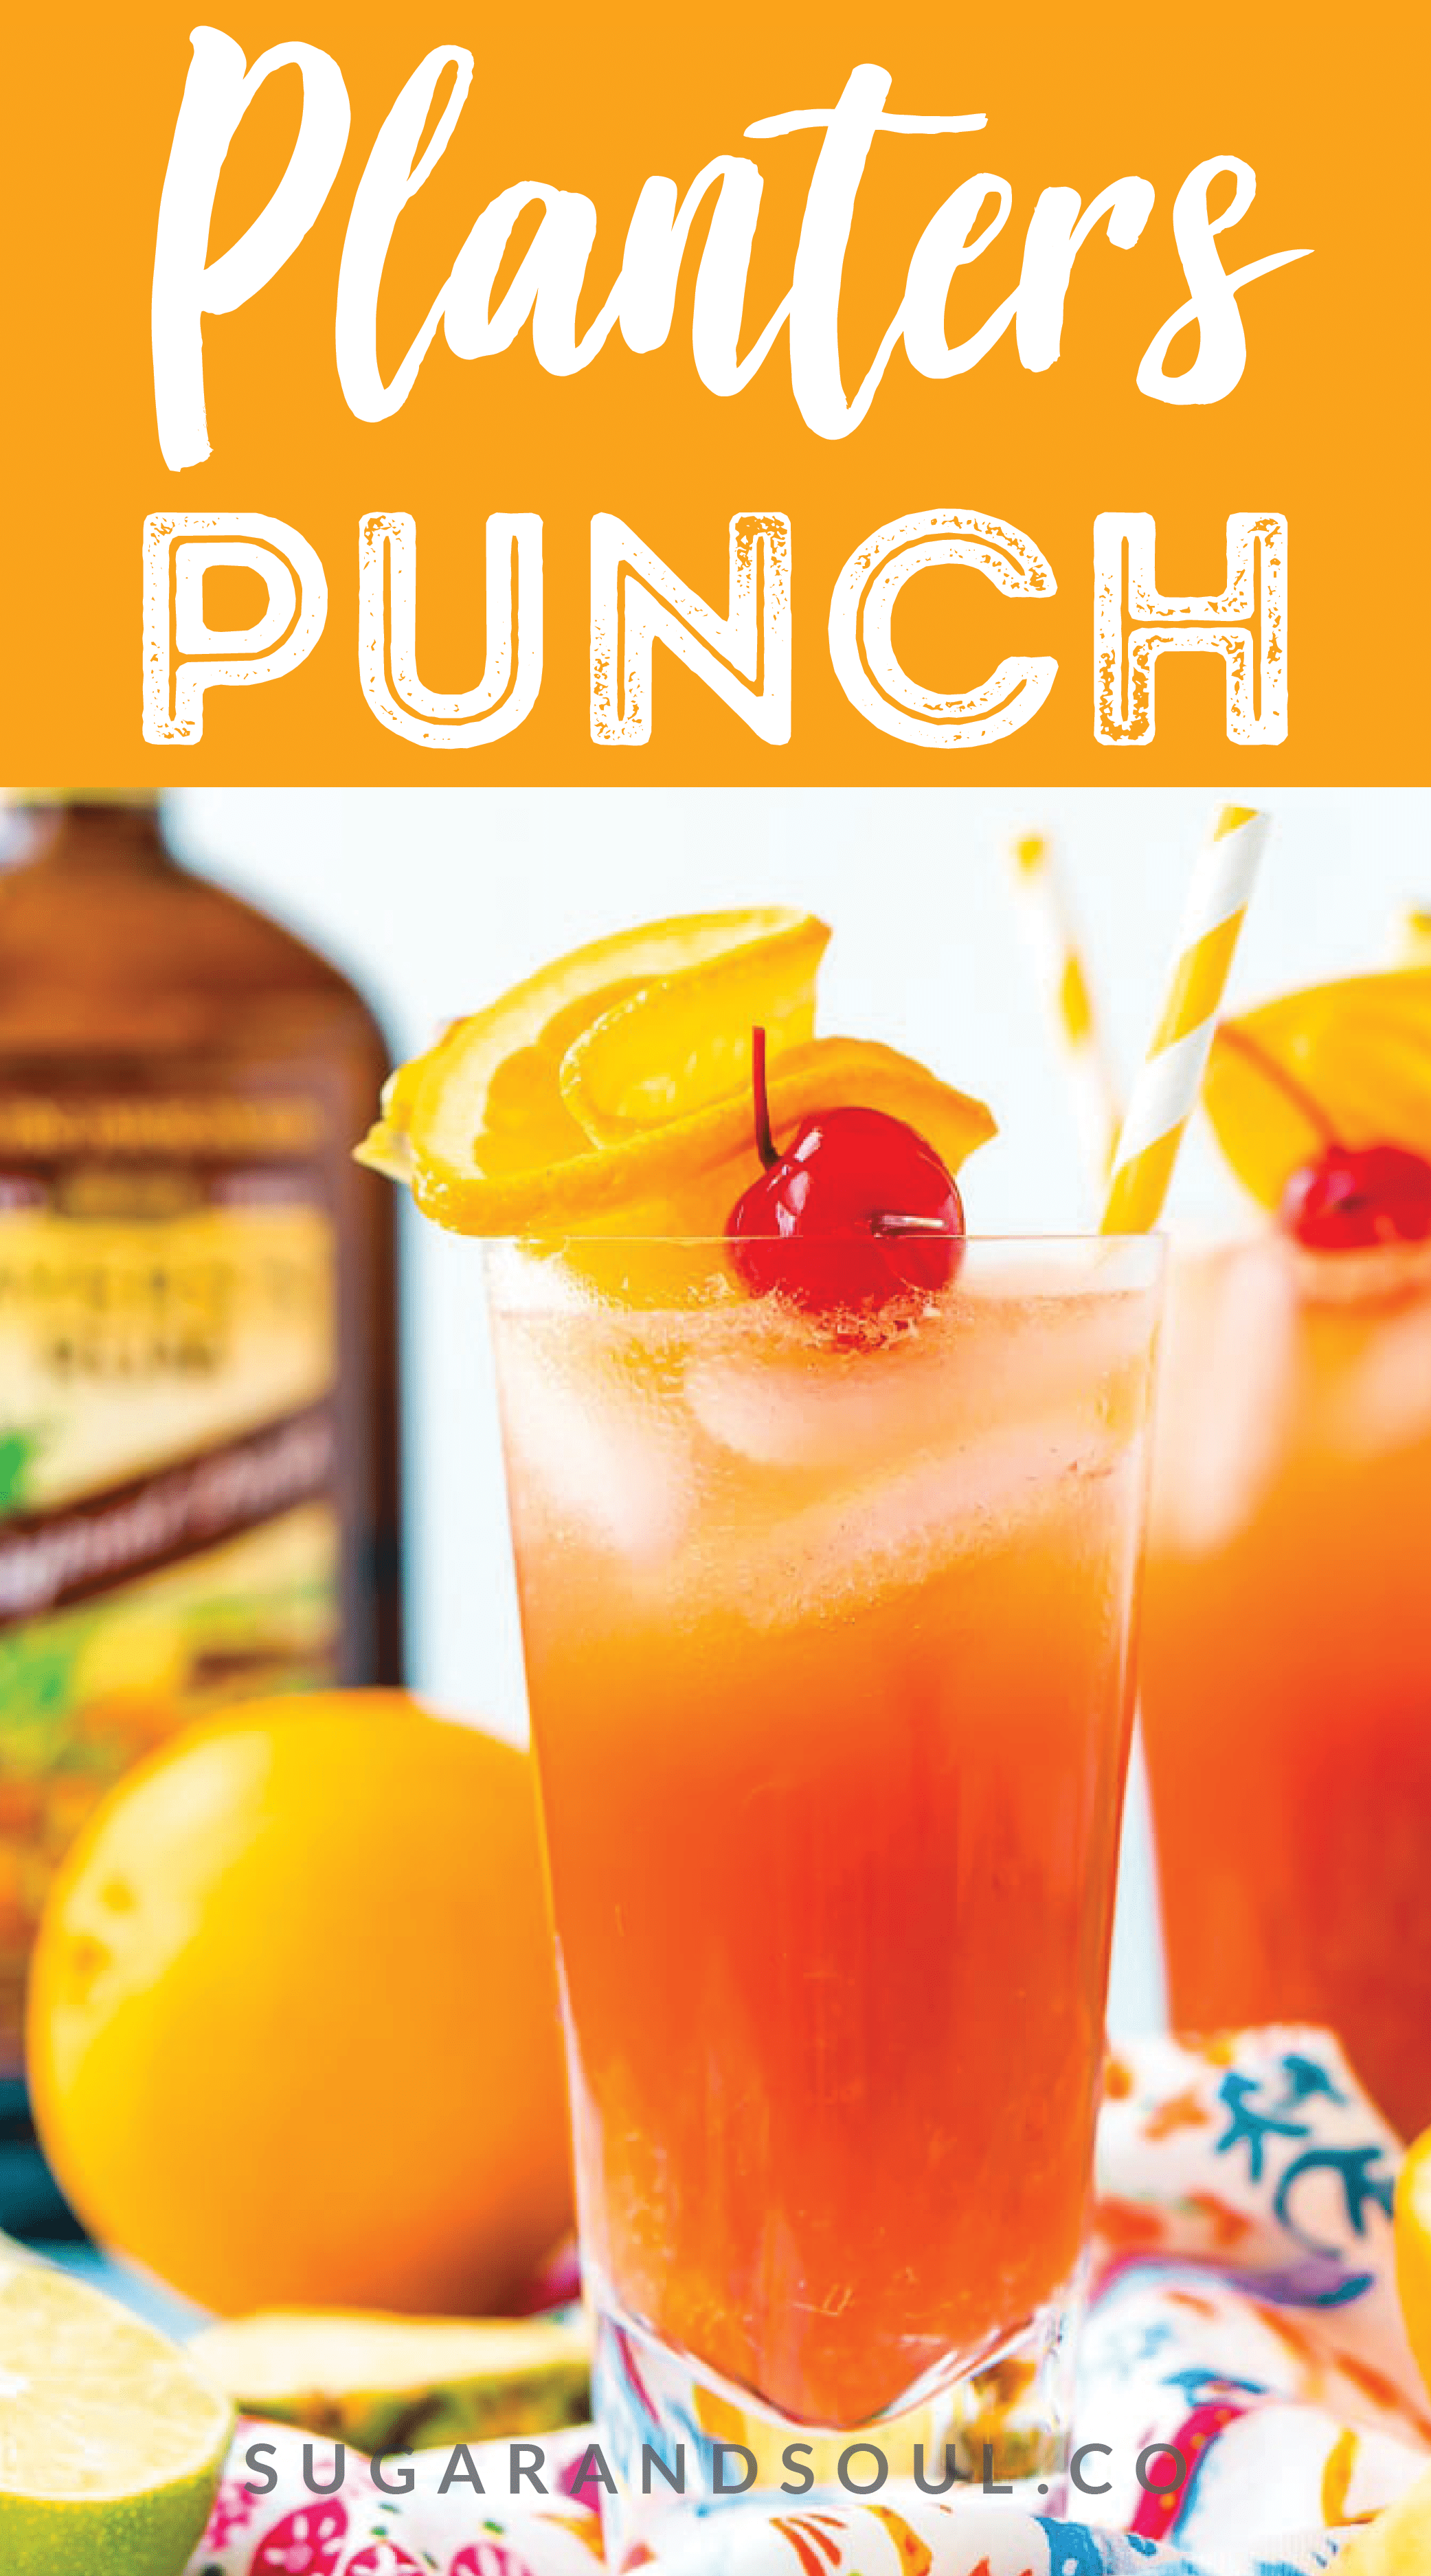 Planter's Punch is a fruity cocktail that's spiked with rum. Made with orange and pineapple juices, a splash of lime, grenadine, and dark or spiced rum, this tropical mixed drink is dangerously delicious! via @sugarandsoulco